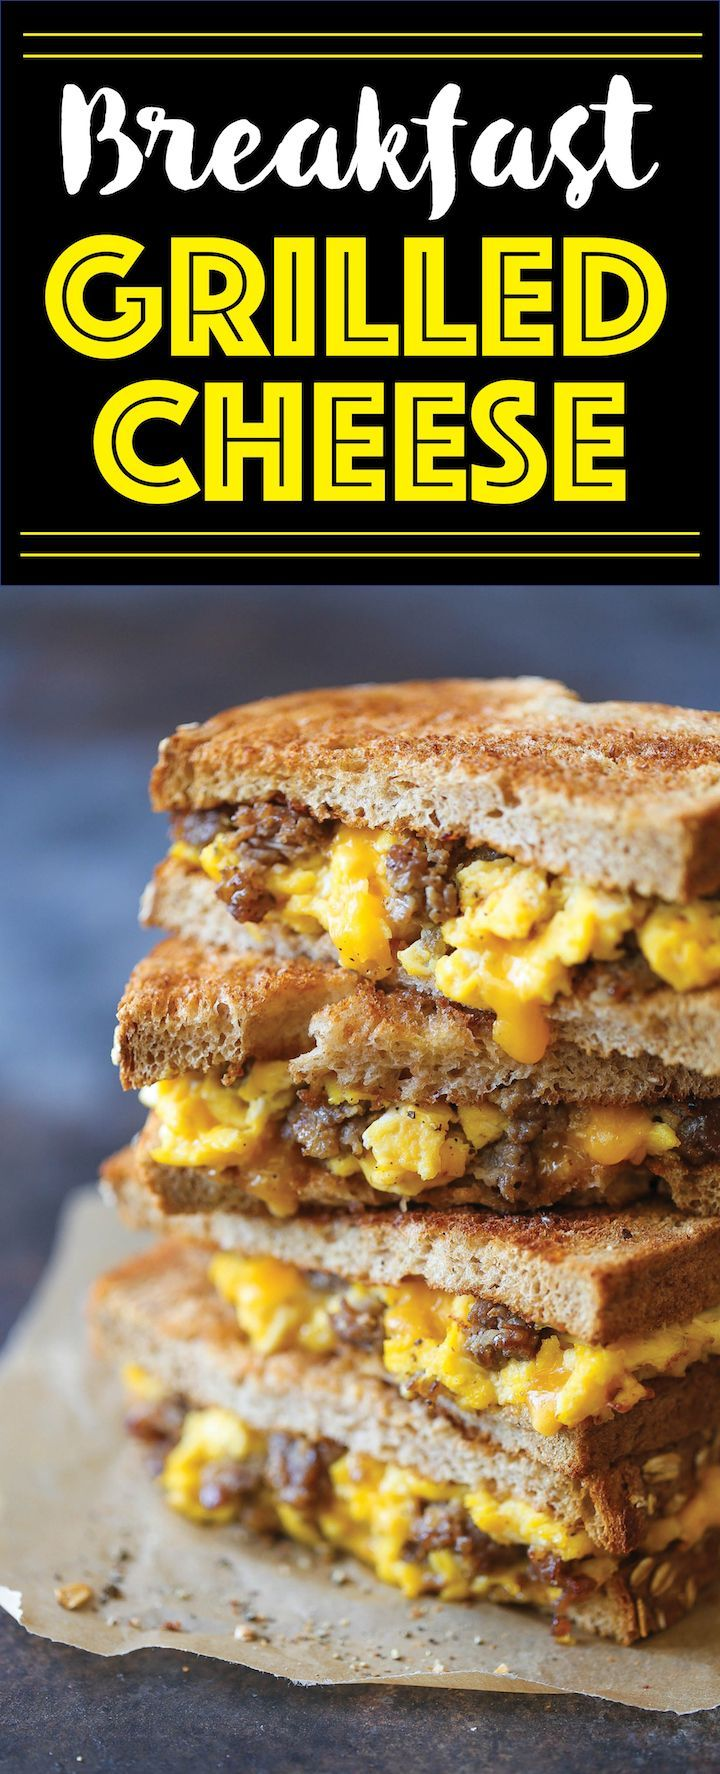 Breakfast Grilled Cheese - The PERFECT excuse to have grilled cheese for breakfast - with scrambled eggs, sausage and of course, ooey gooey melted cheese!